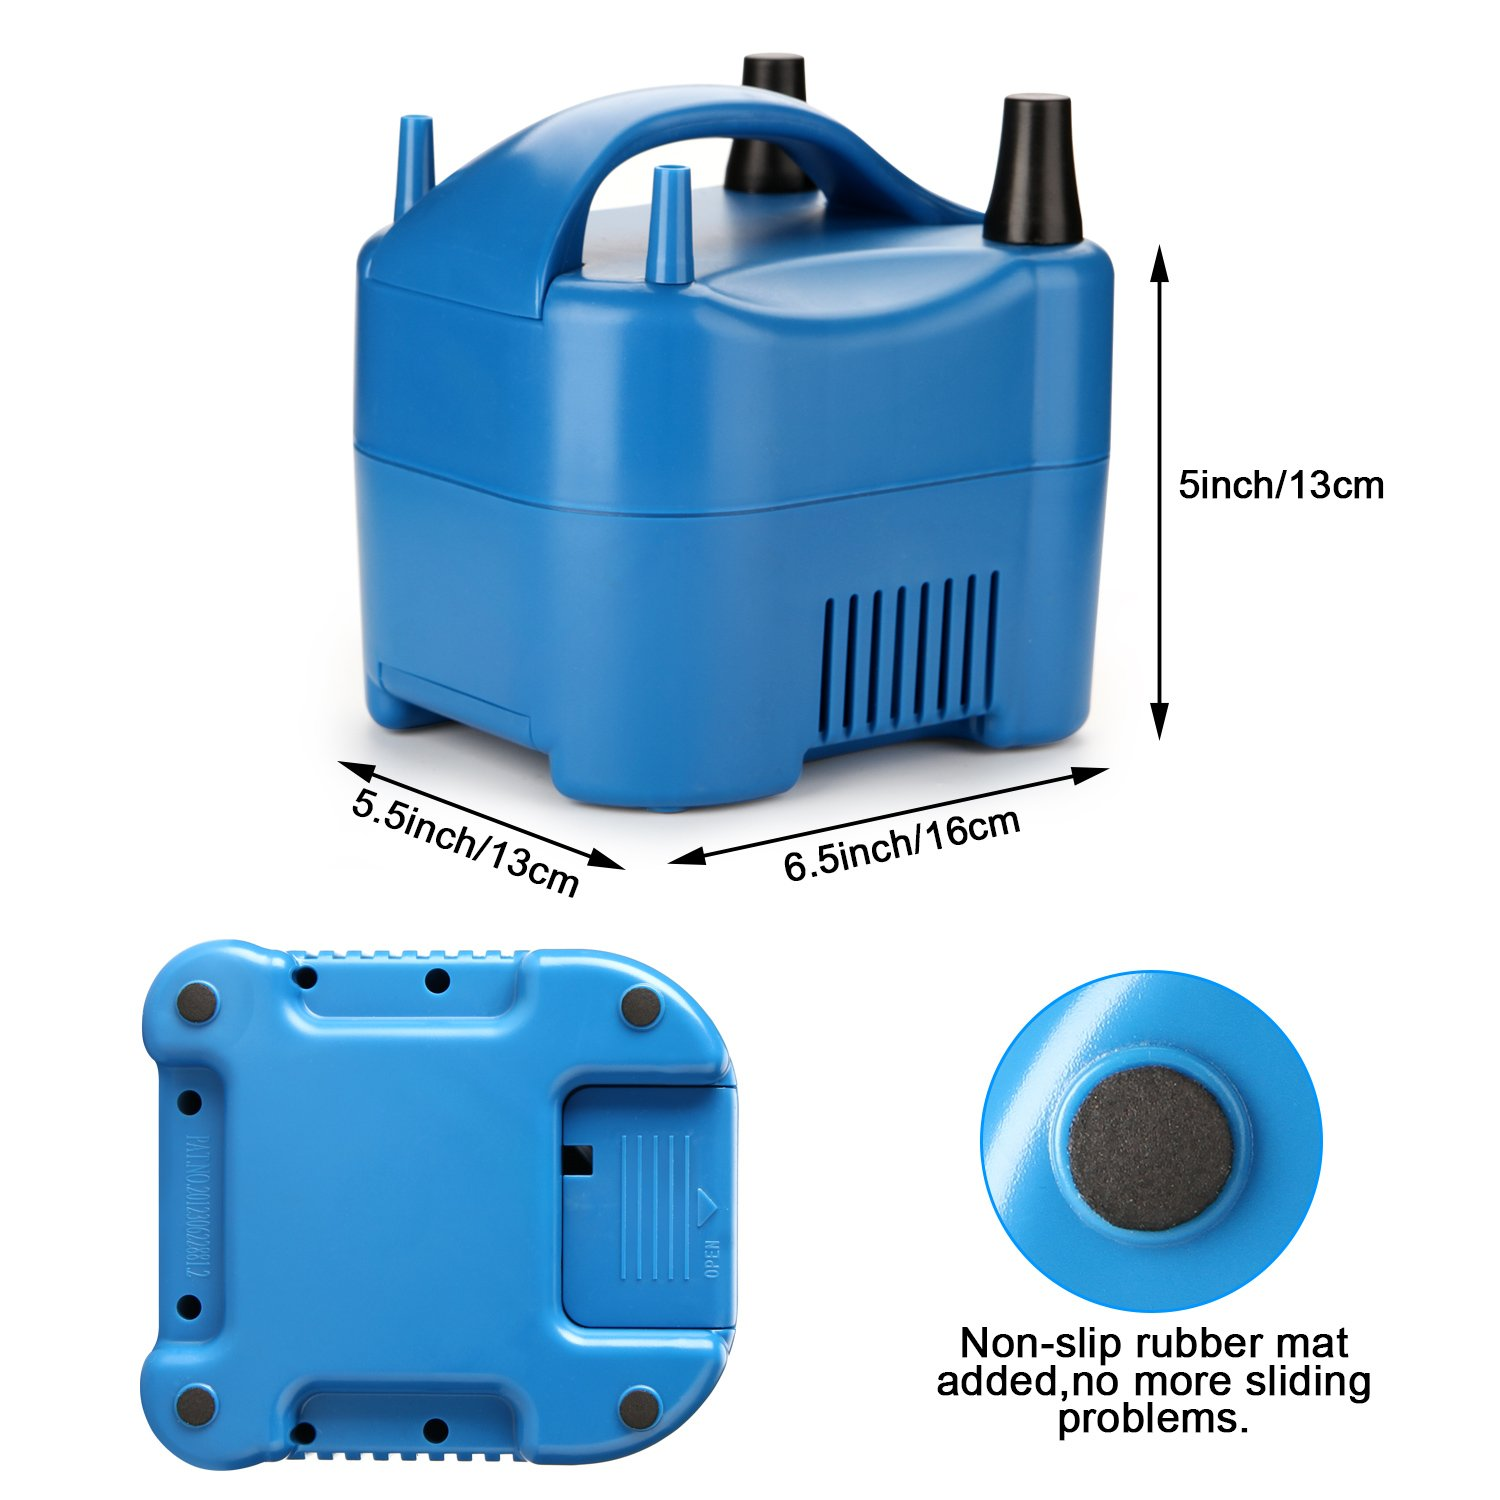 AGPtek Two Nozzle High Power Electric Balloon Inflator Pump Portable Blue Air Blower,680W High Power,Inflate In One Second by AGPTEK (Image #4)